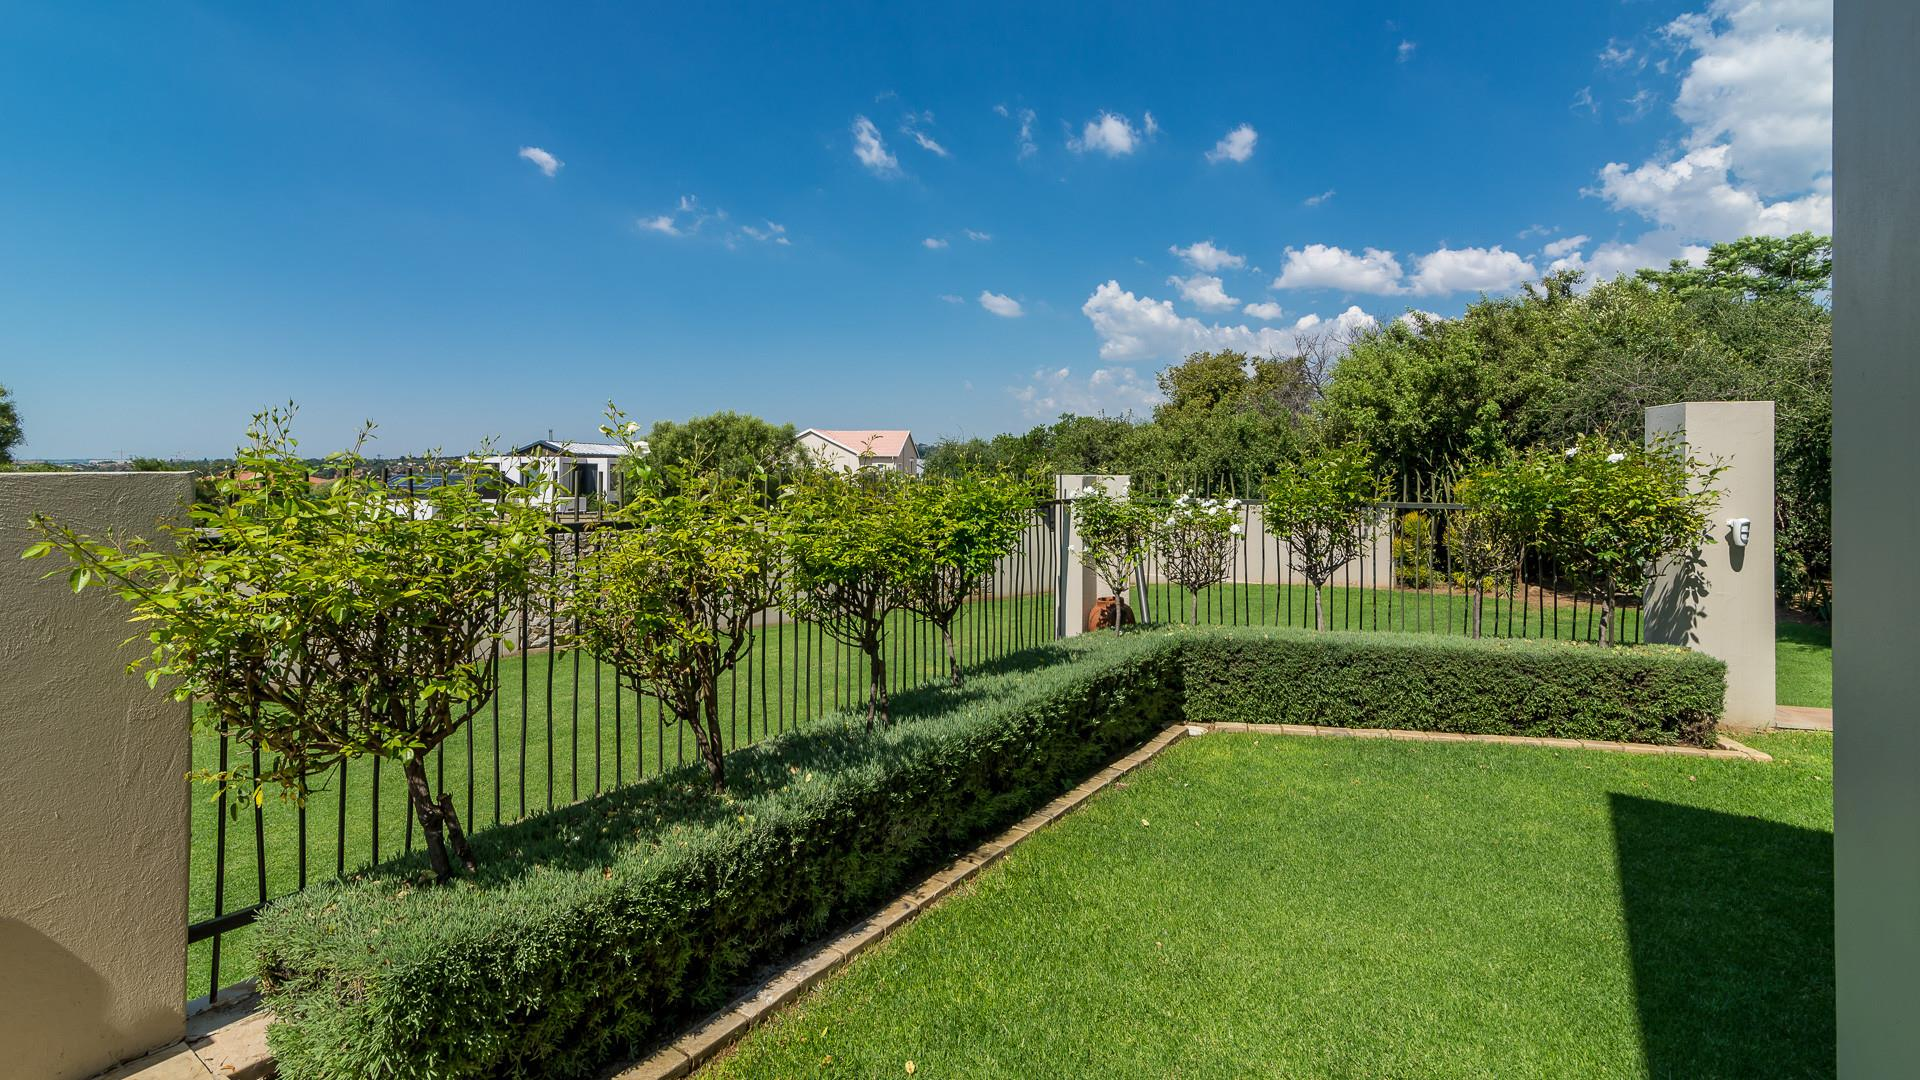 4 Bedroom House For Sale in Olivedale